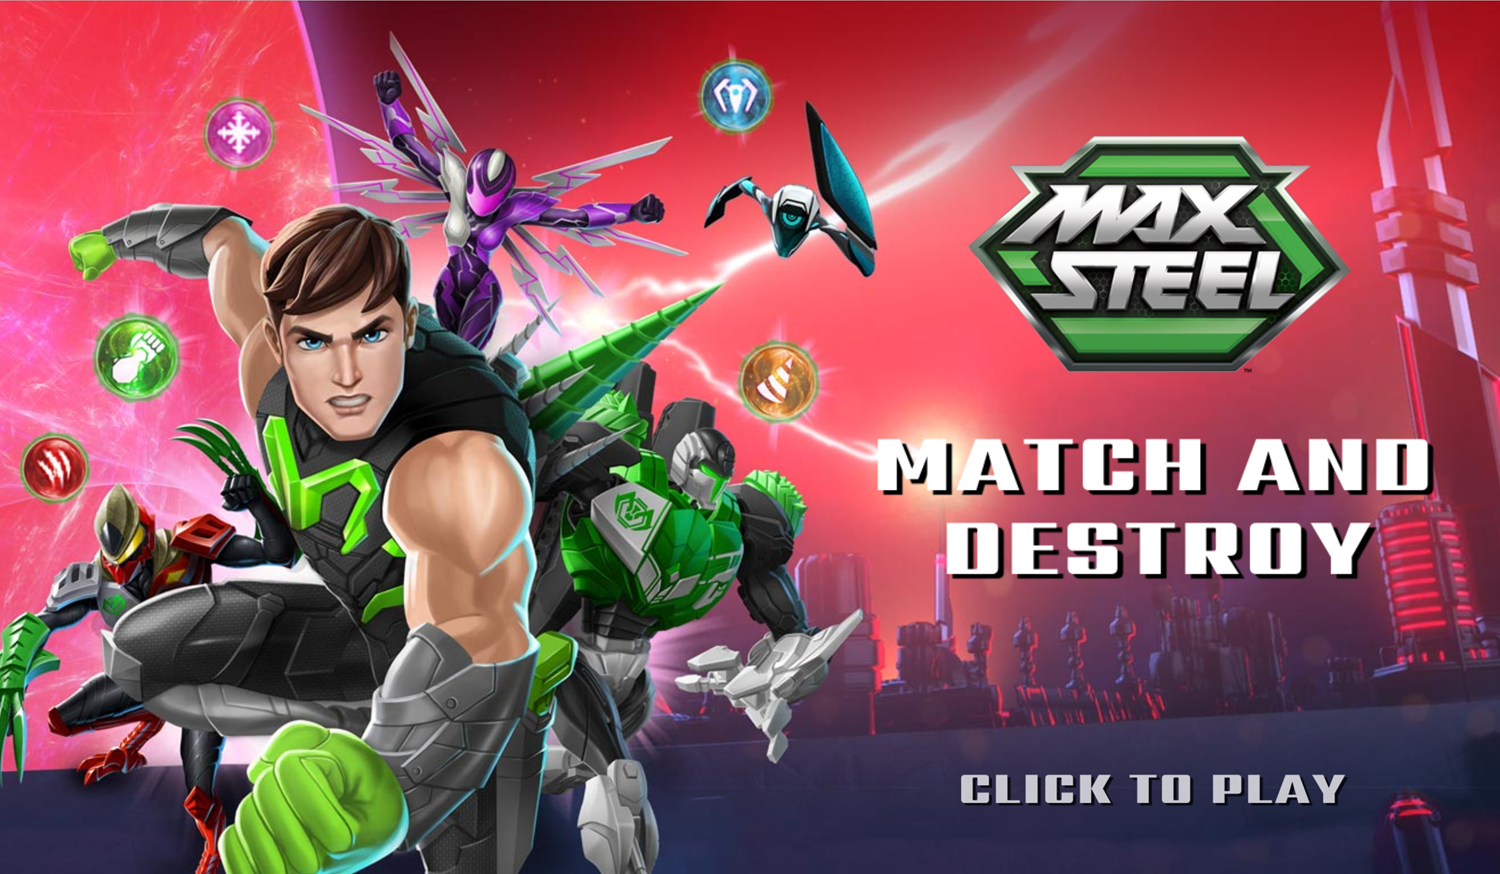 Max Steel Match and Destroy Game Welcome Screen Screenshot.